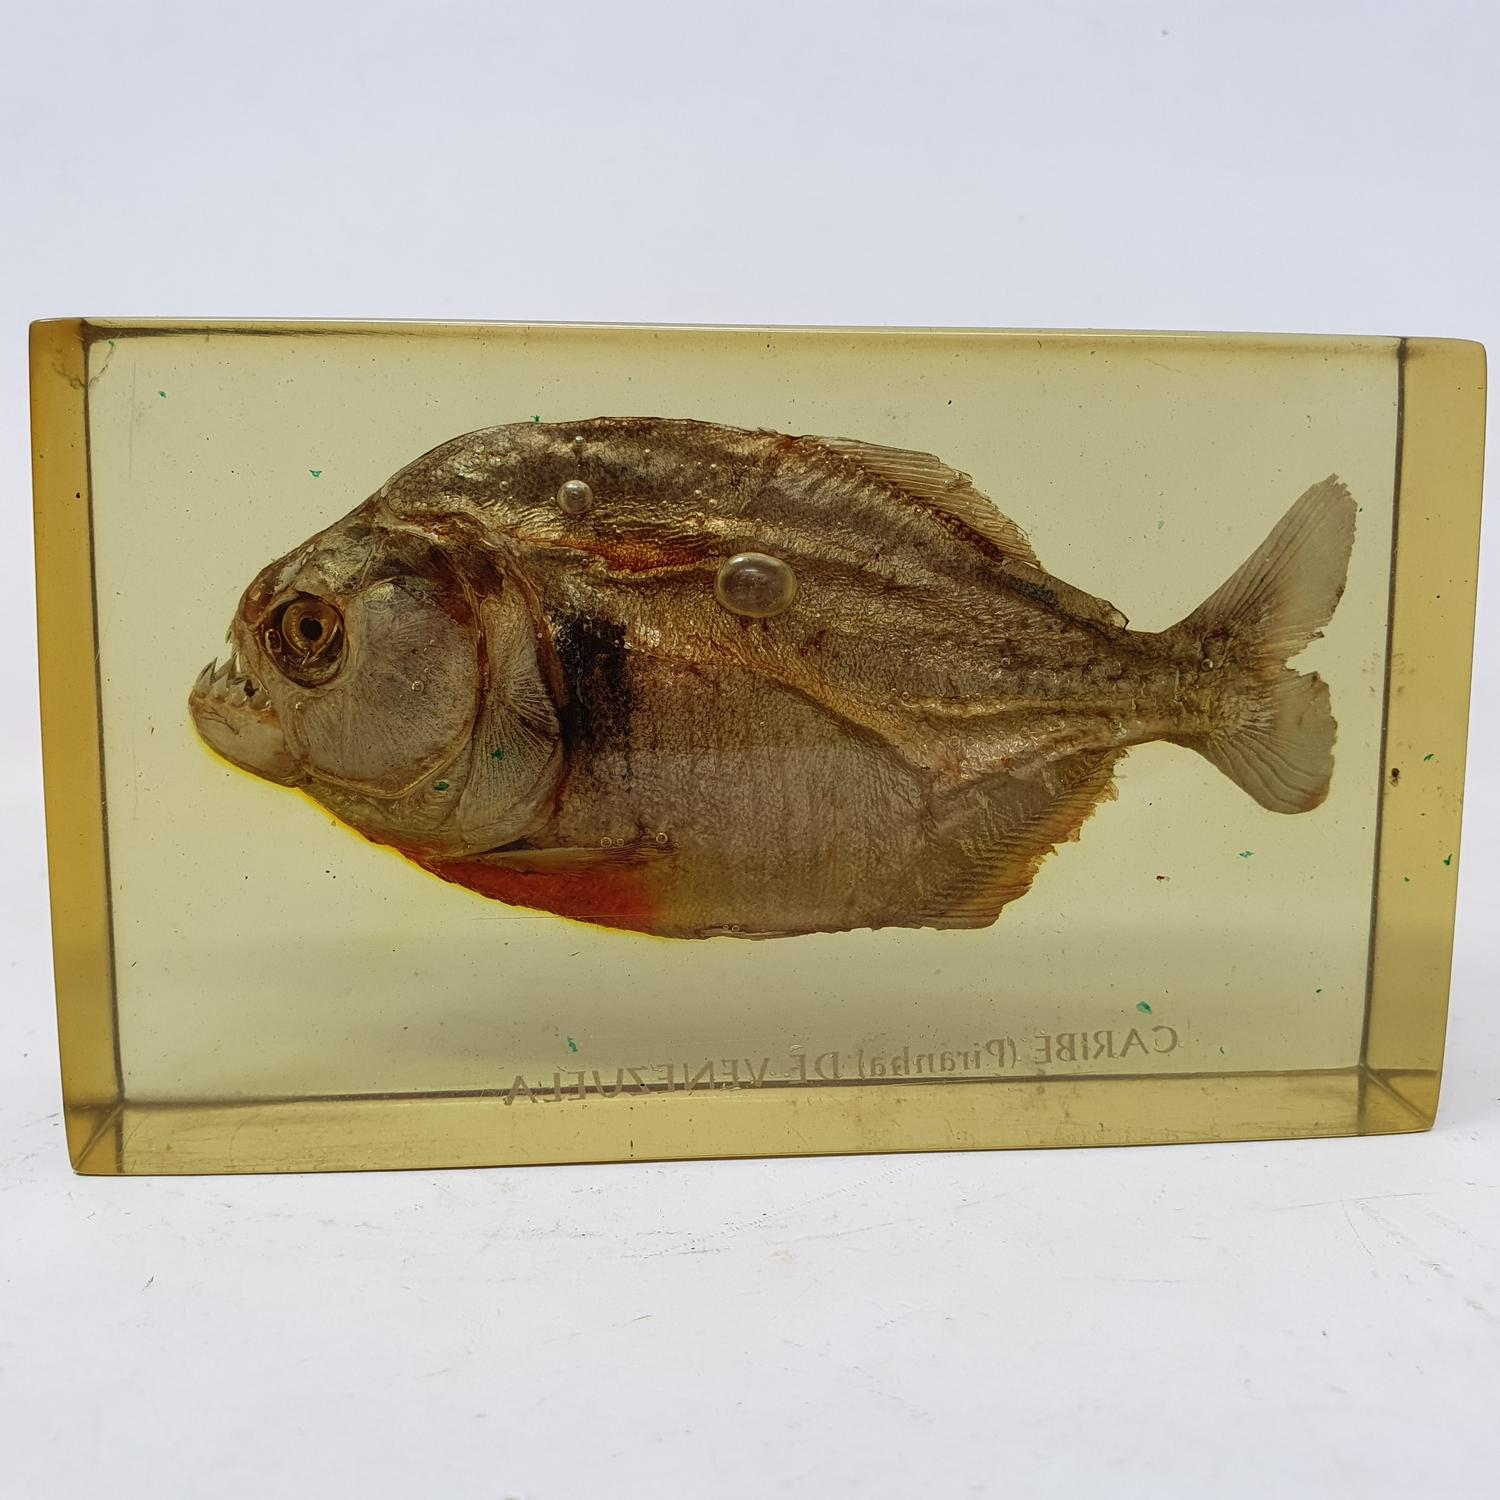 A pirannah, set in perspex box, 15 cm wide - Image 4 of 4